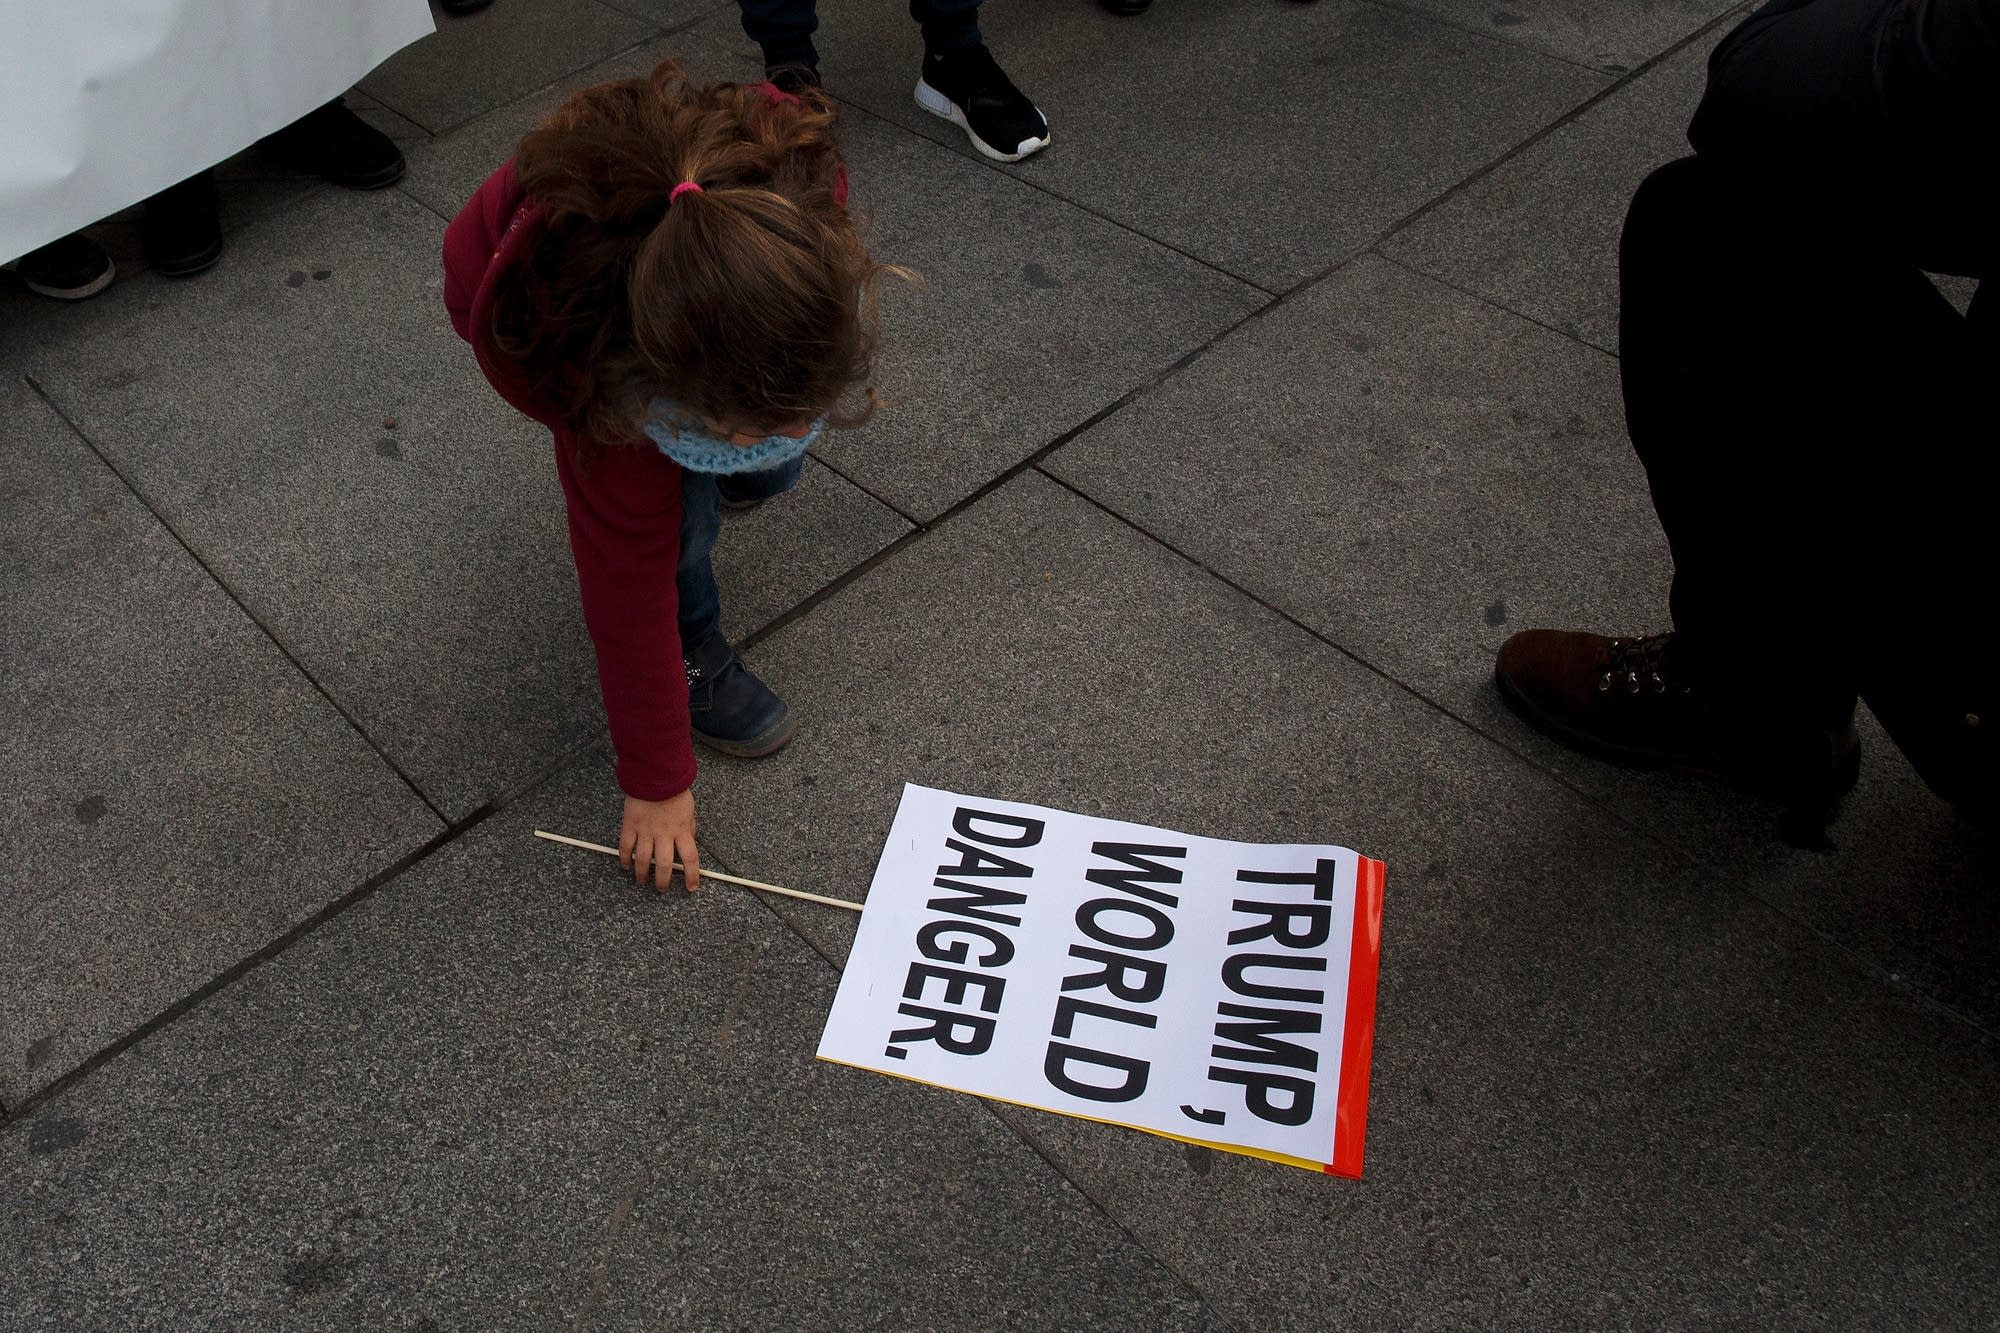 Madrid, Spain: A girl picks up a placard.